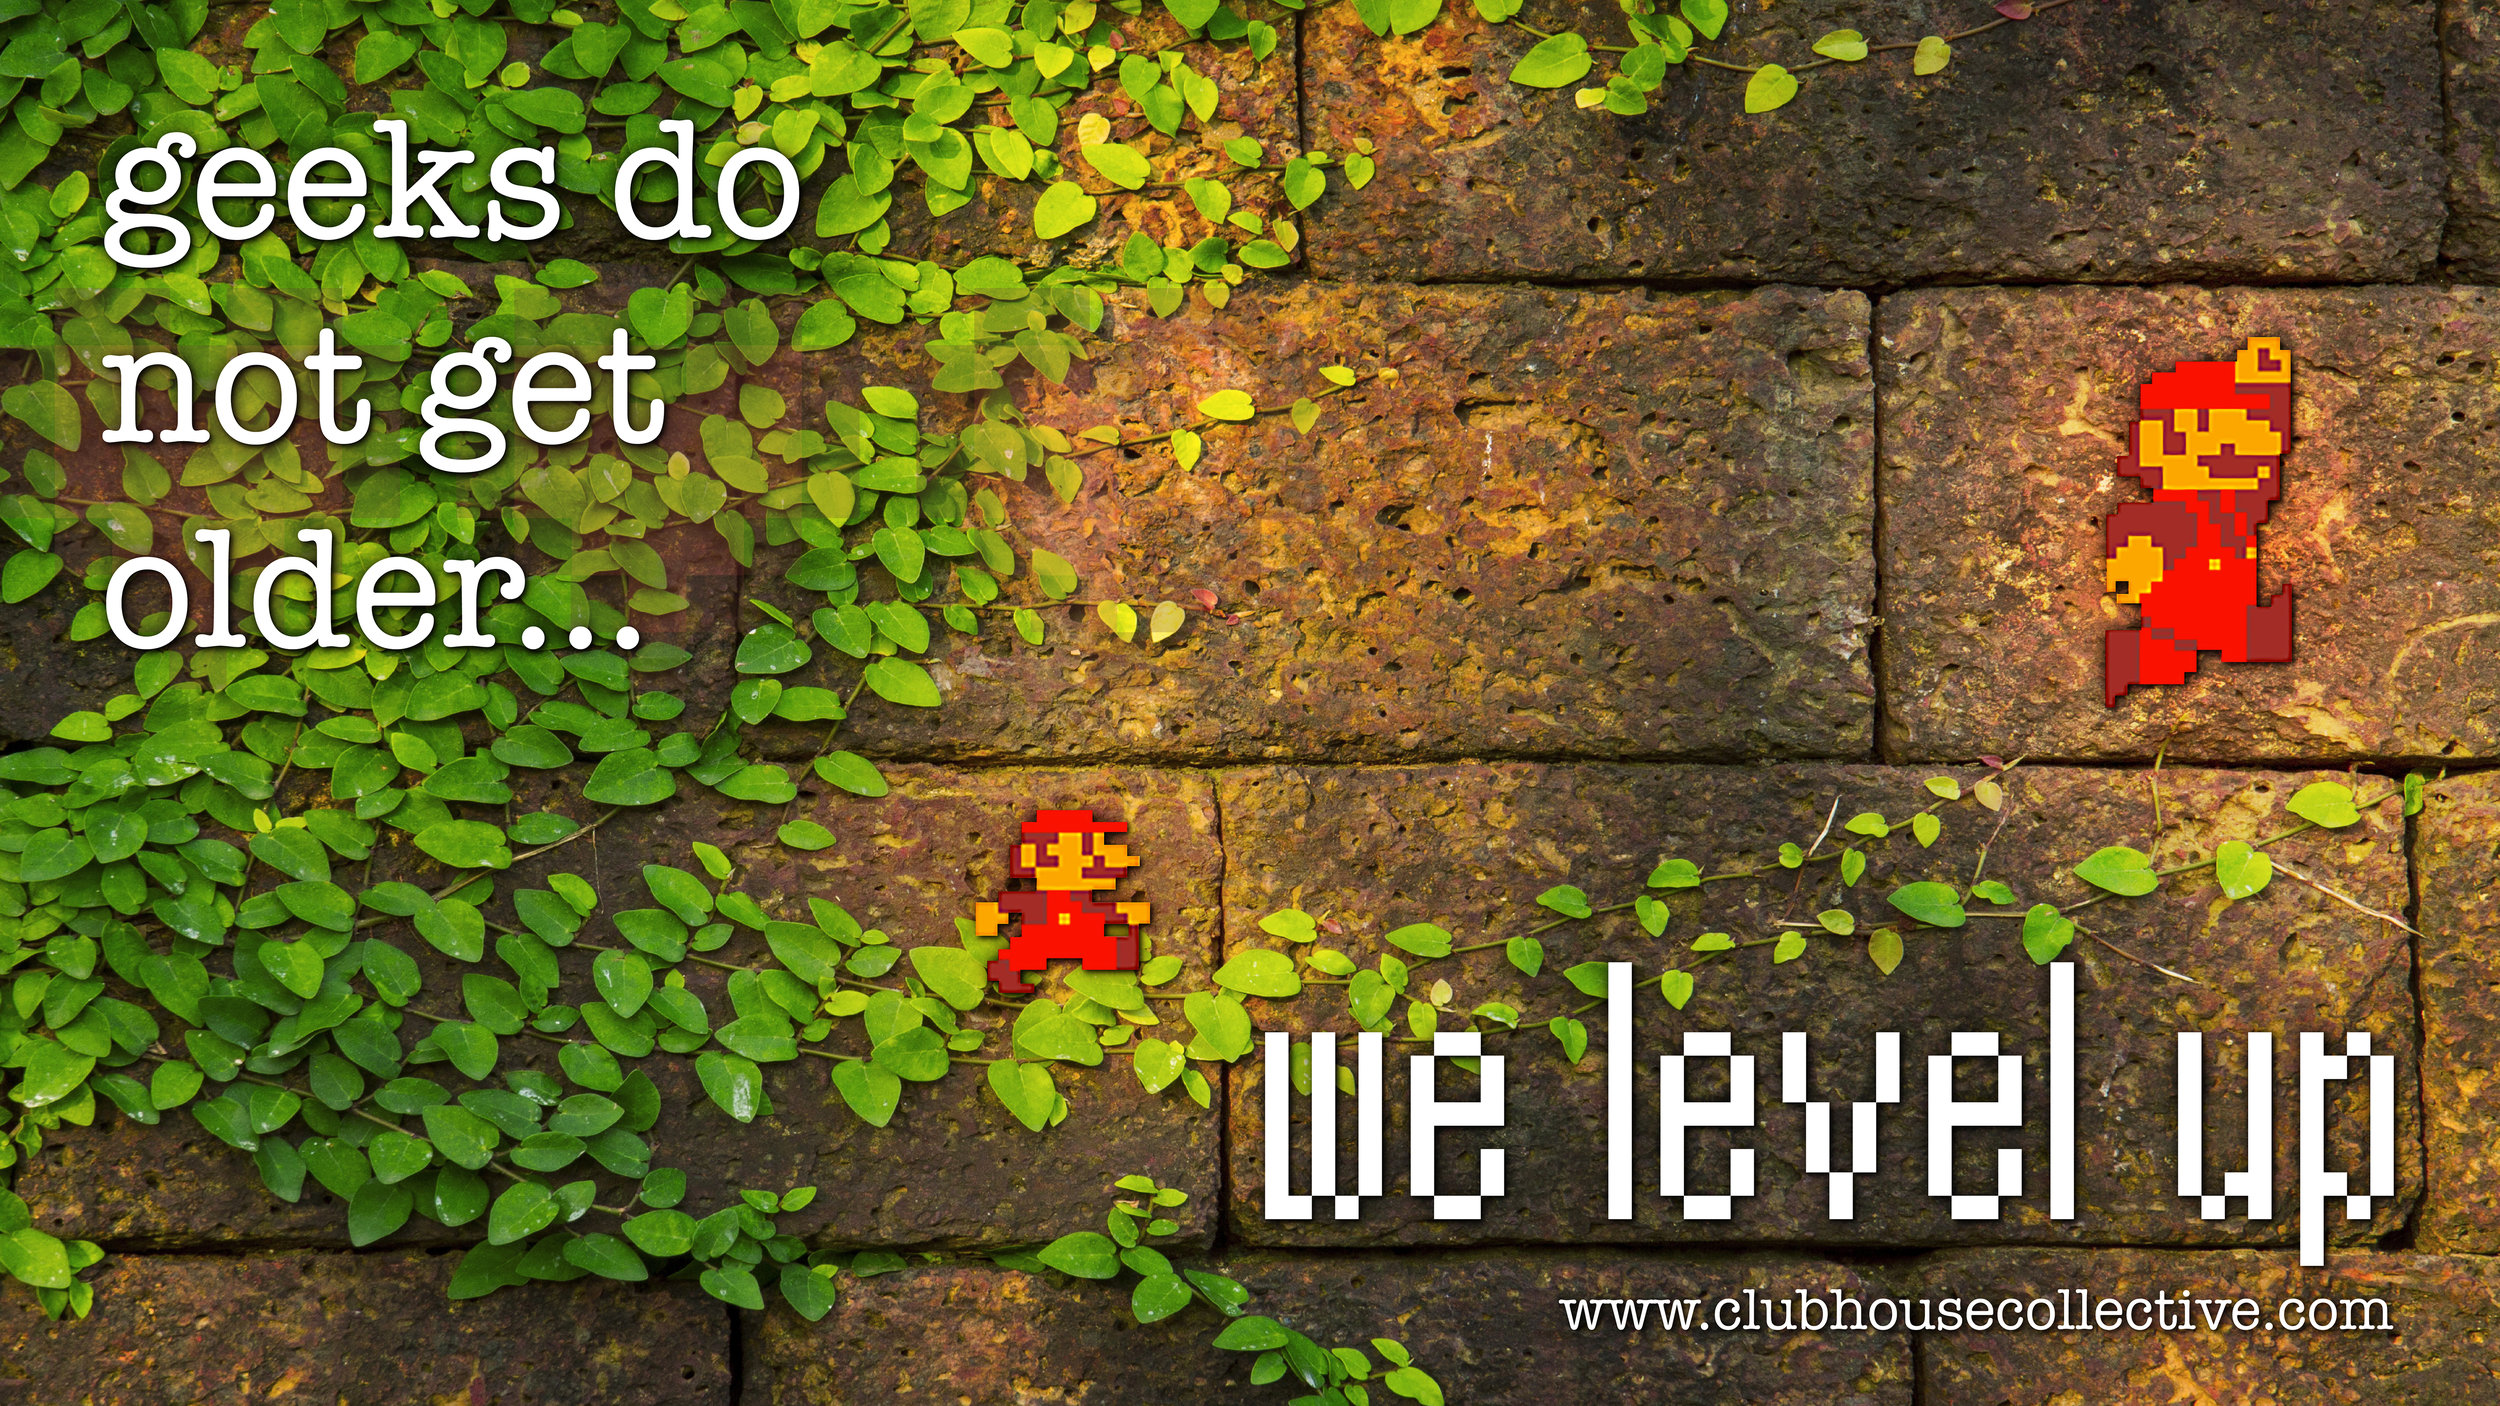 Geeks do not get older, we level up. ~ Corinne Jade, ClubHouse Collective